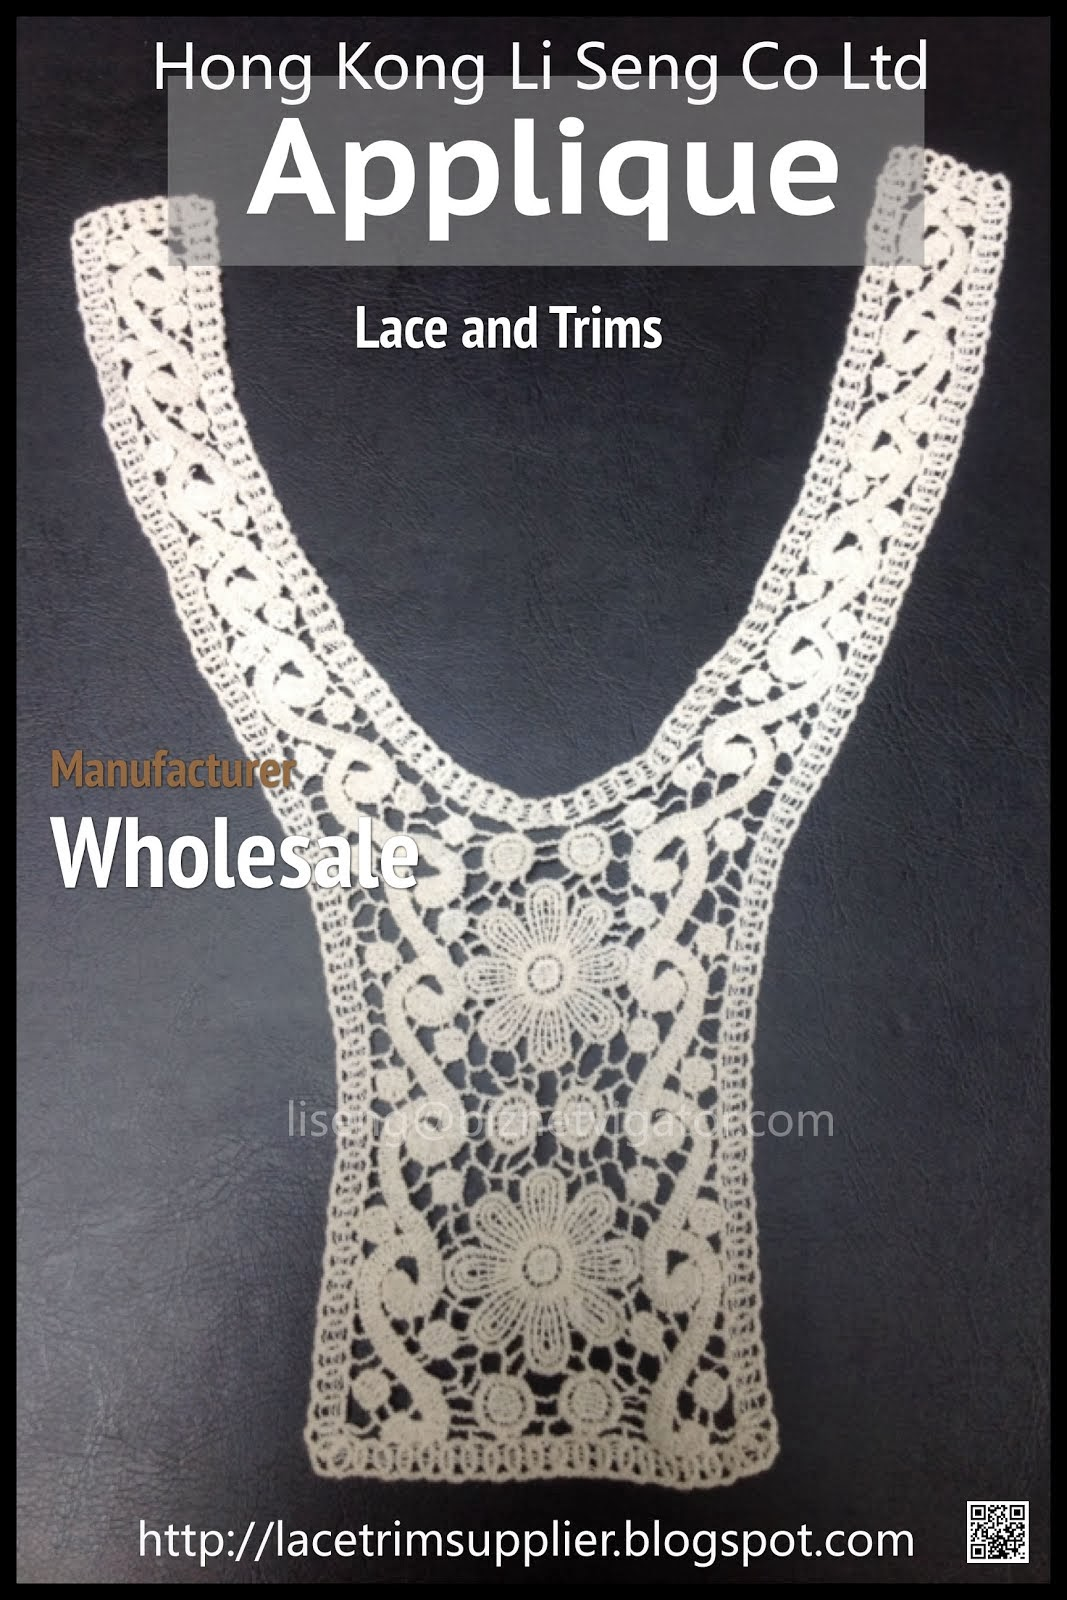 Lace and Trims Supplier Wholesale Manufacturer - Hong Kong Li Seng Co Ltd